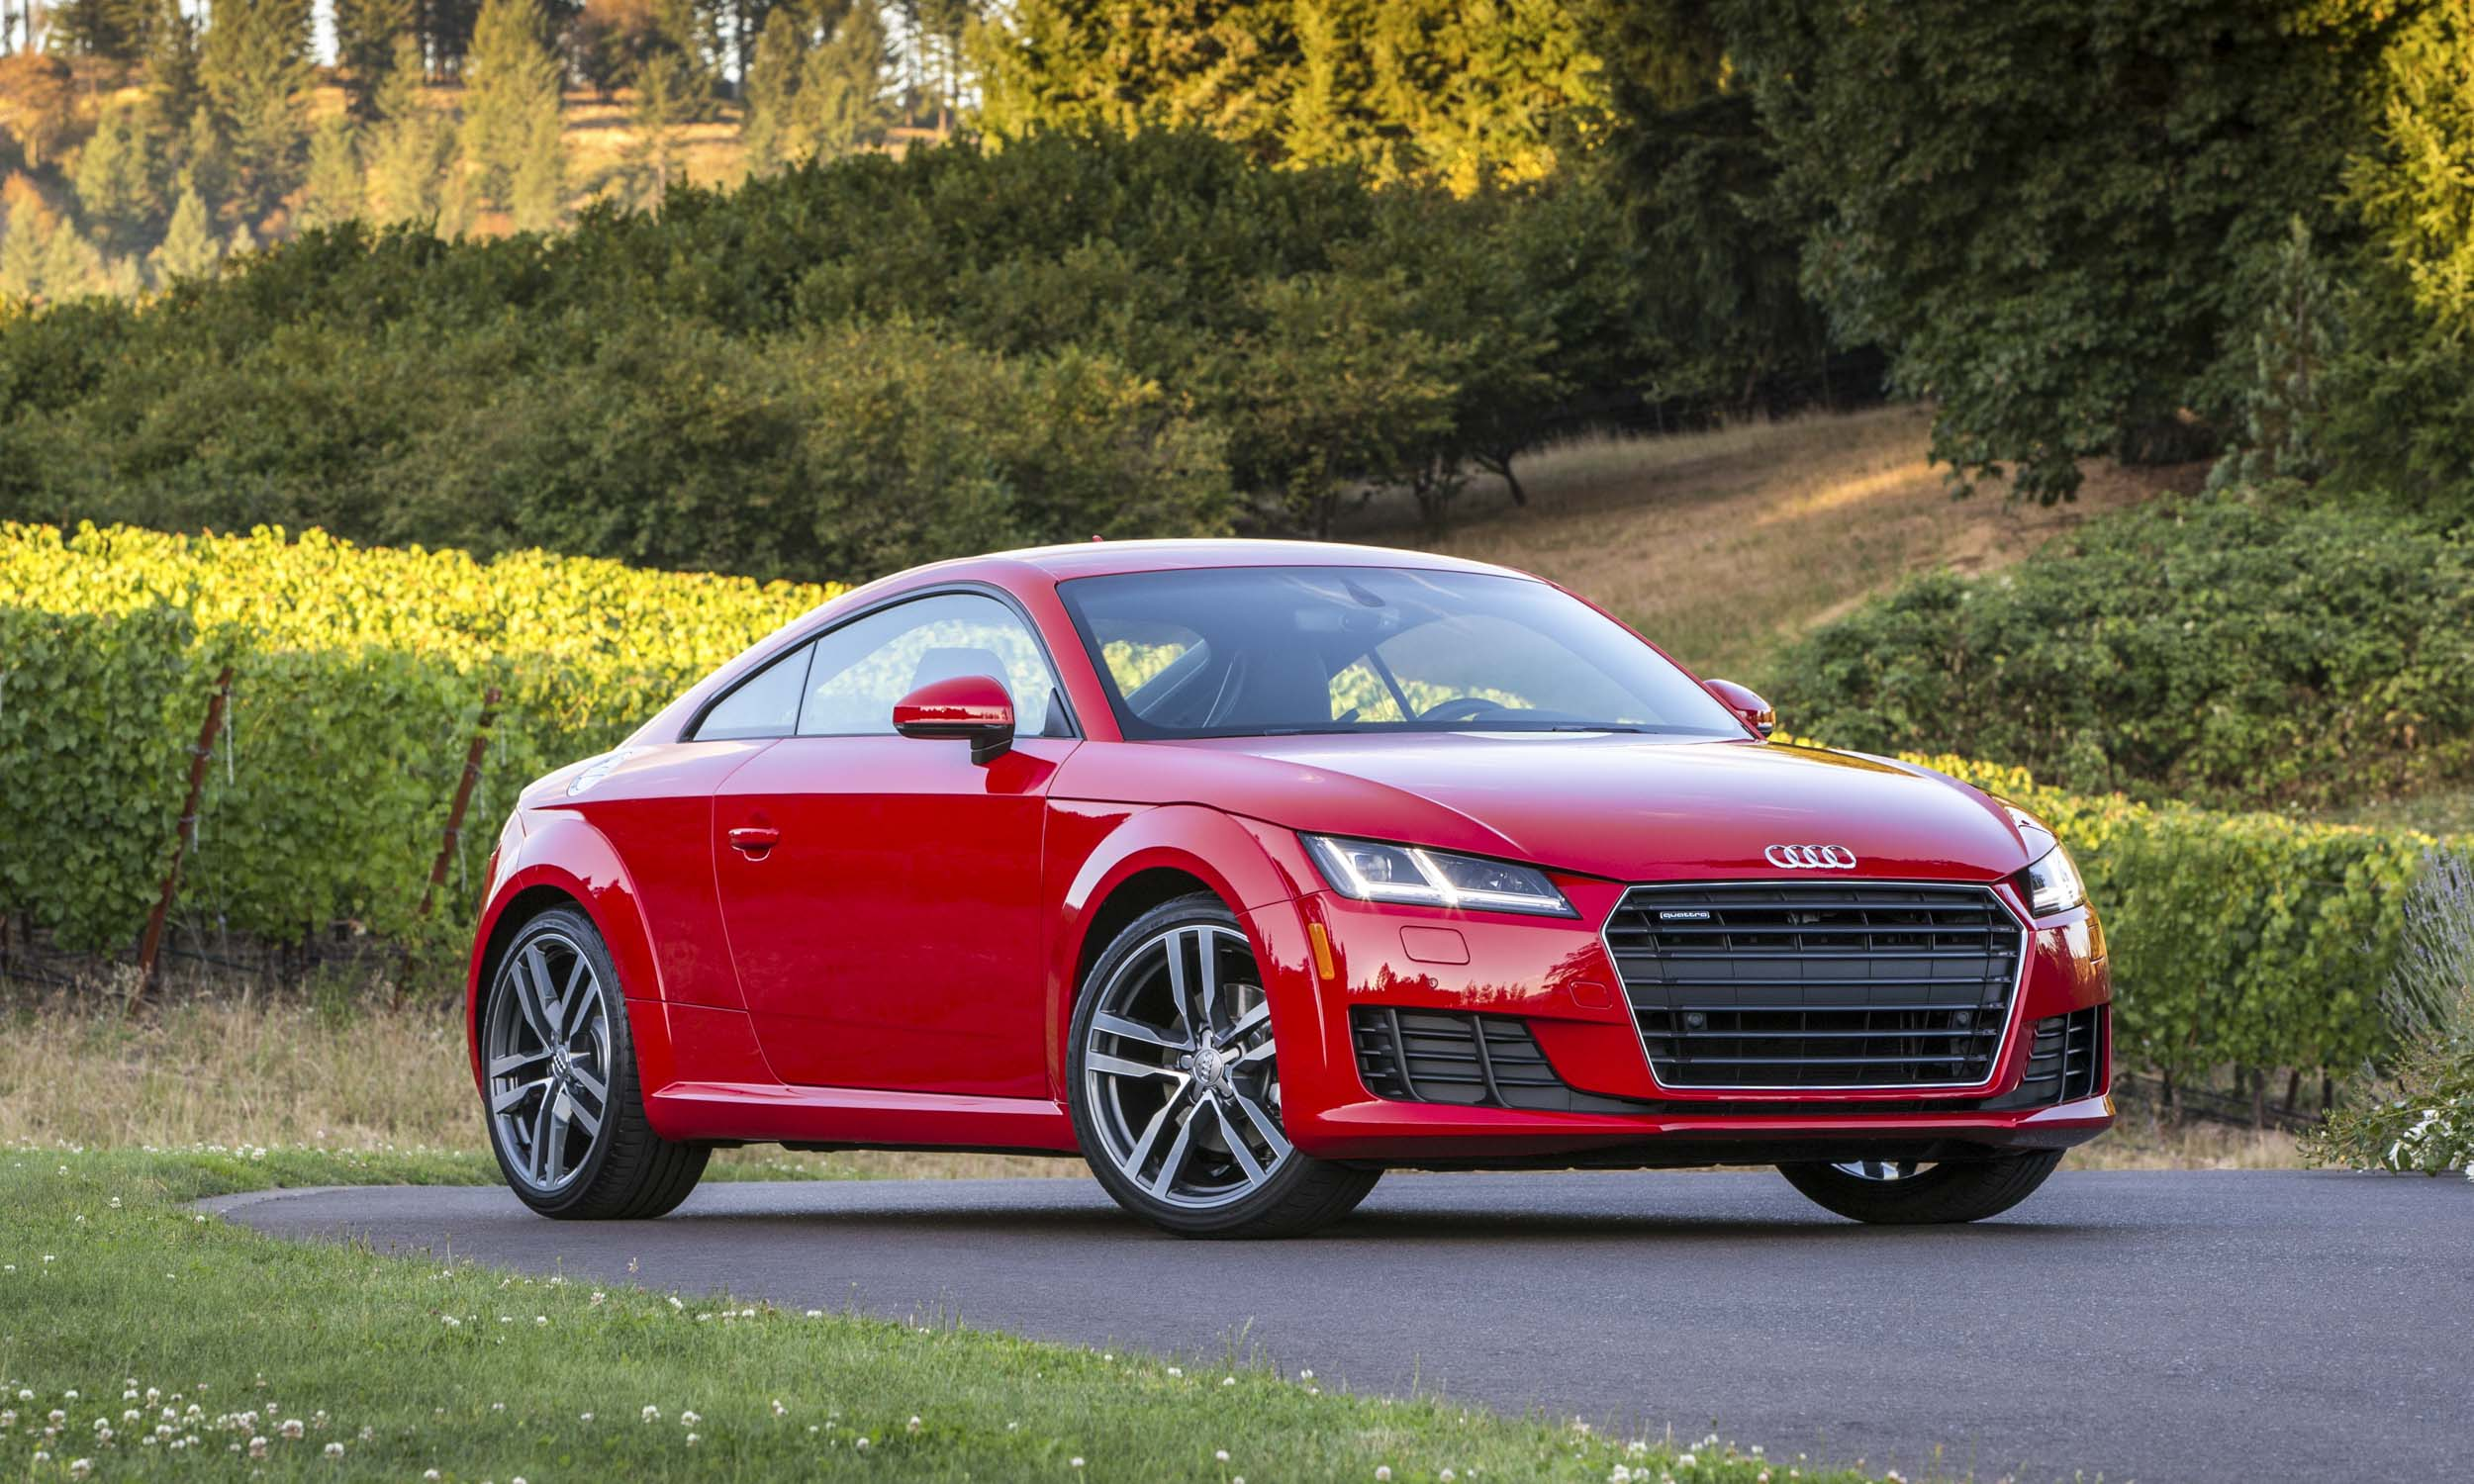 2016 Audi TT: First Drive Review - » AutoNXT